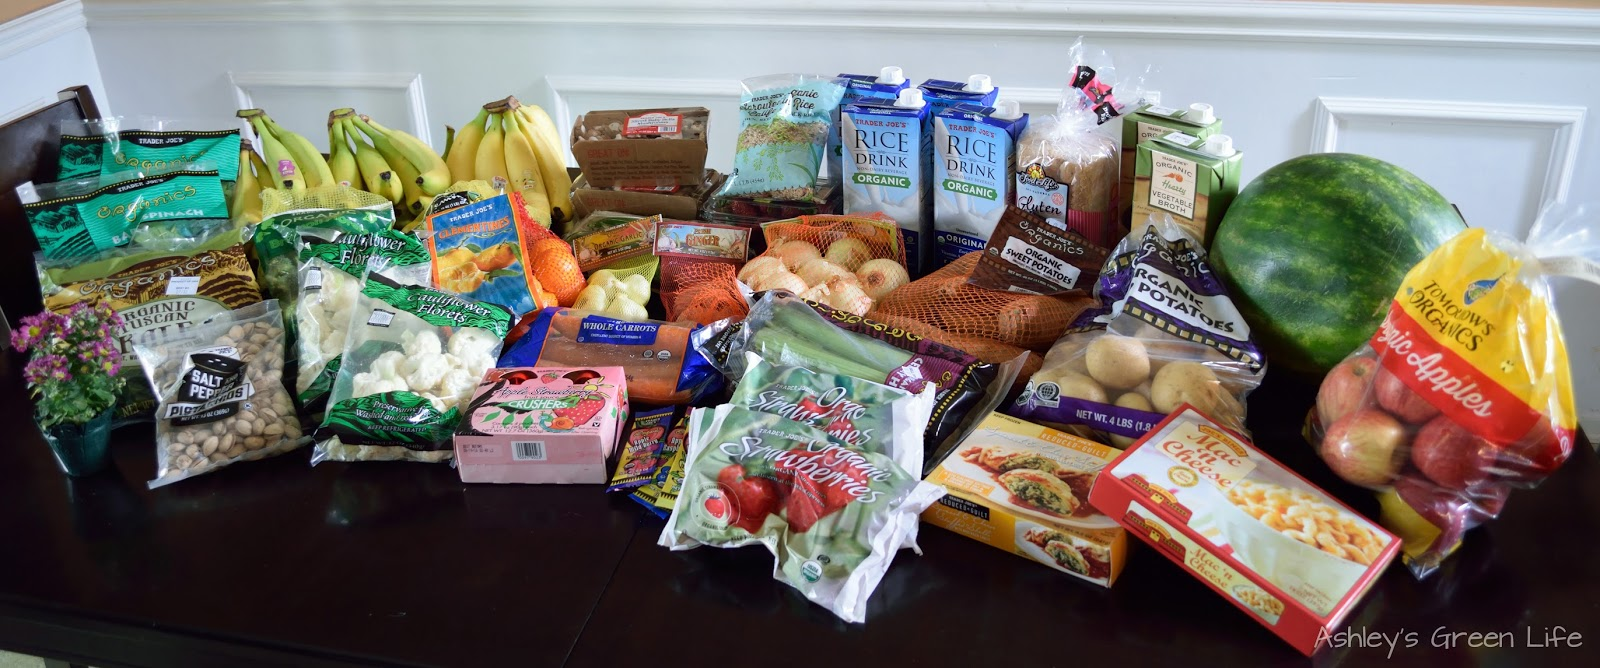 Ashley's Green Life: Vegan Grocery Haul: Summer 2015